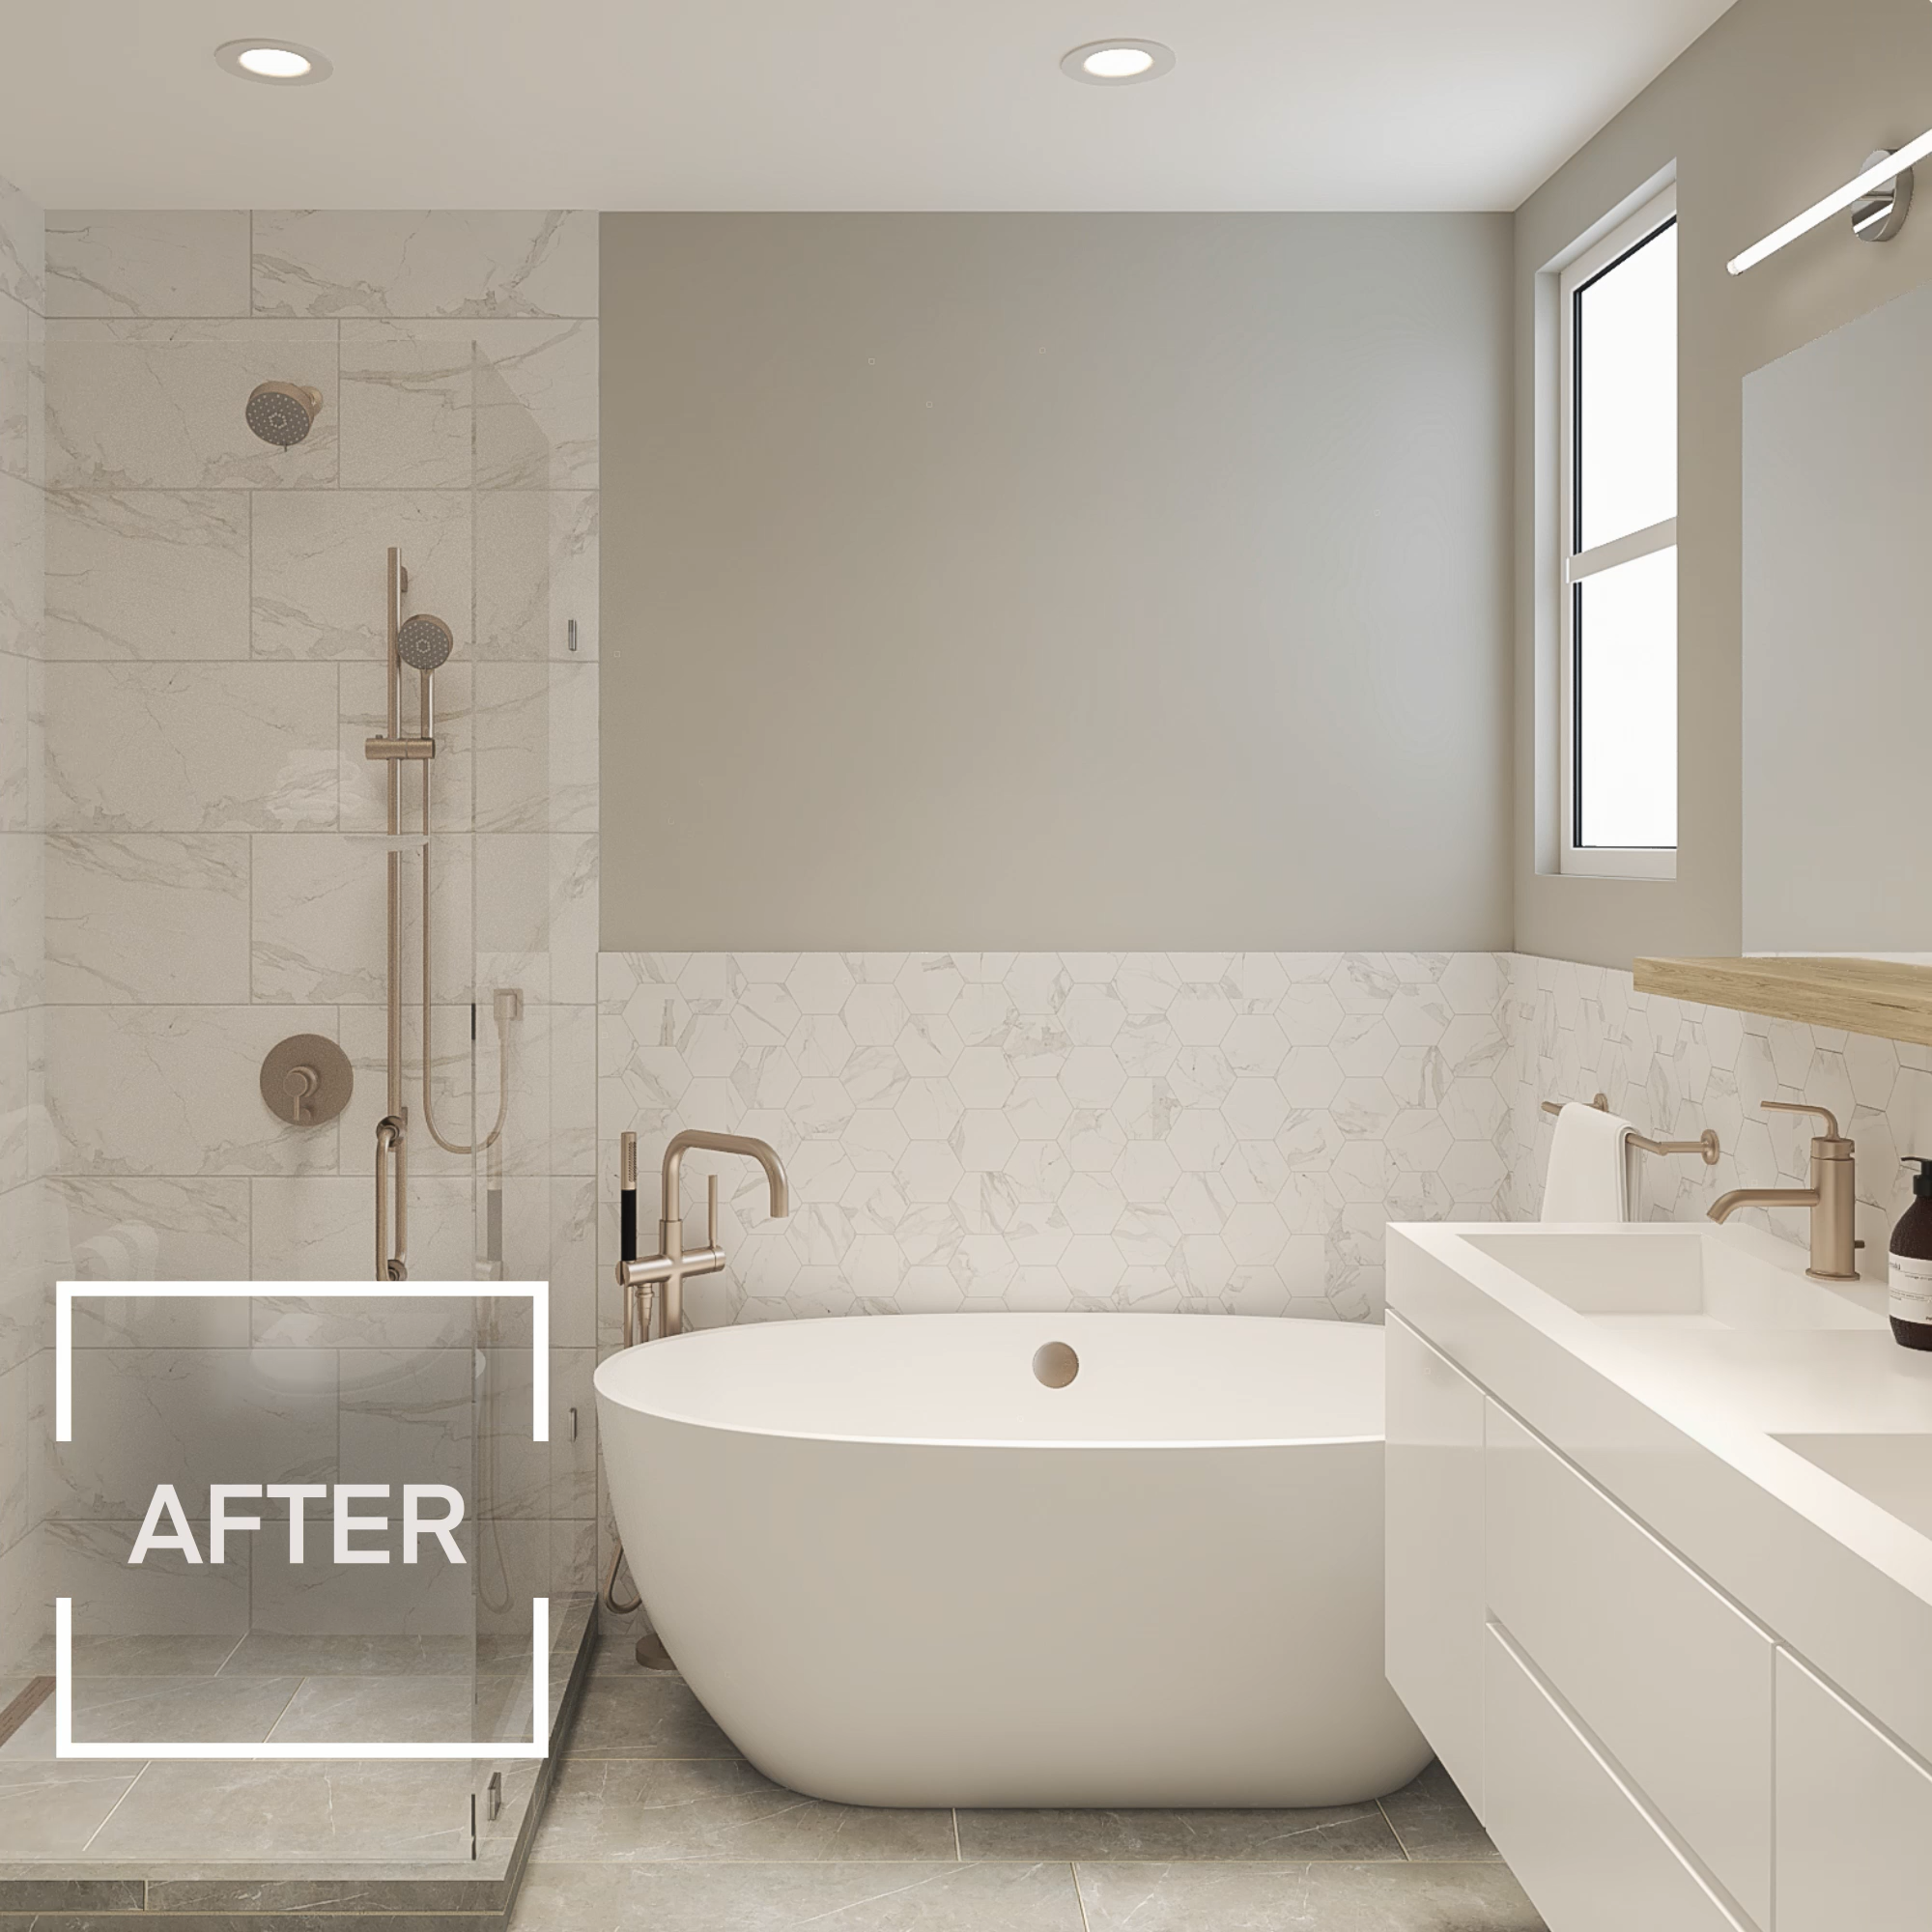 Bathroom Renovations Before & After